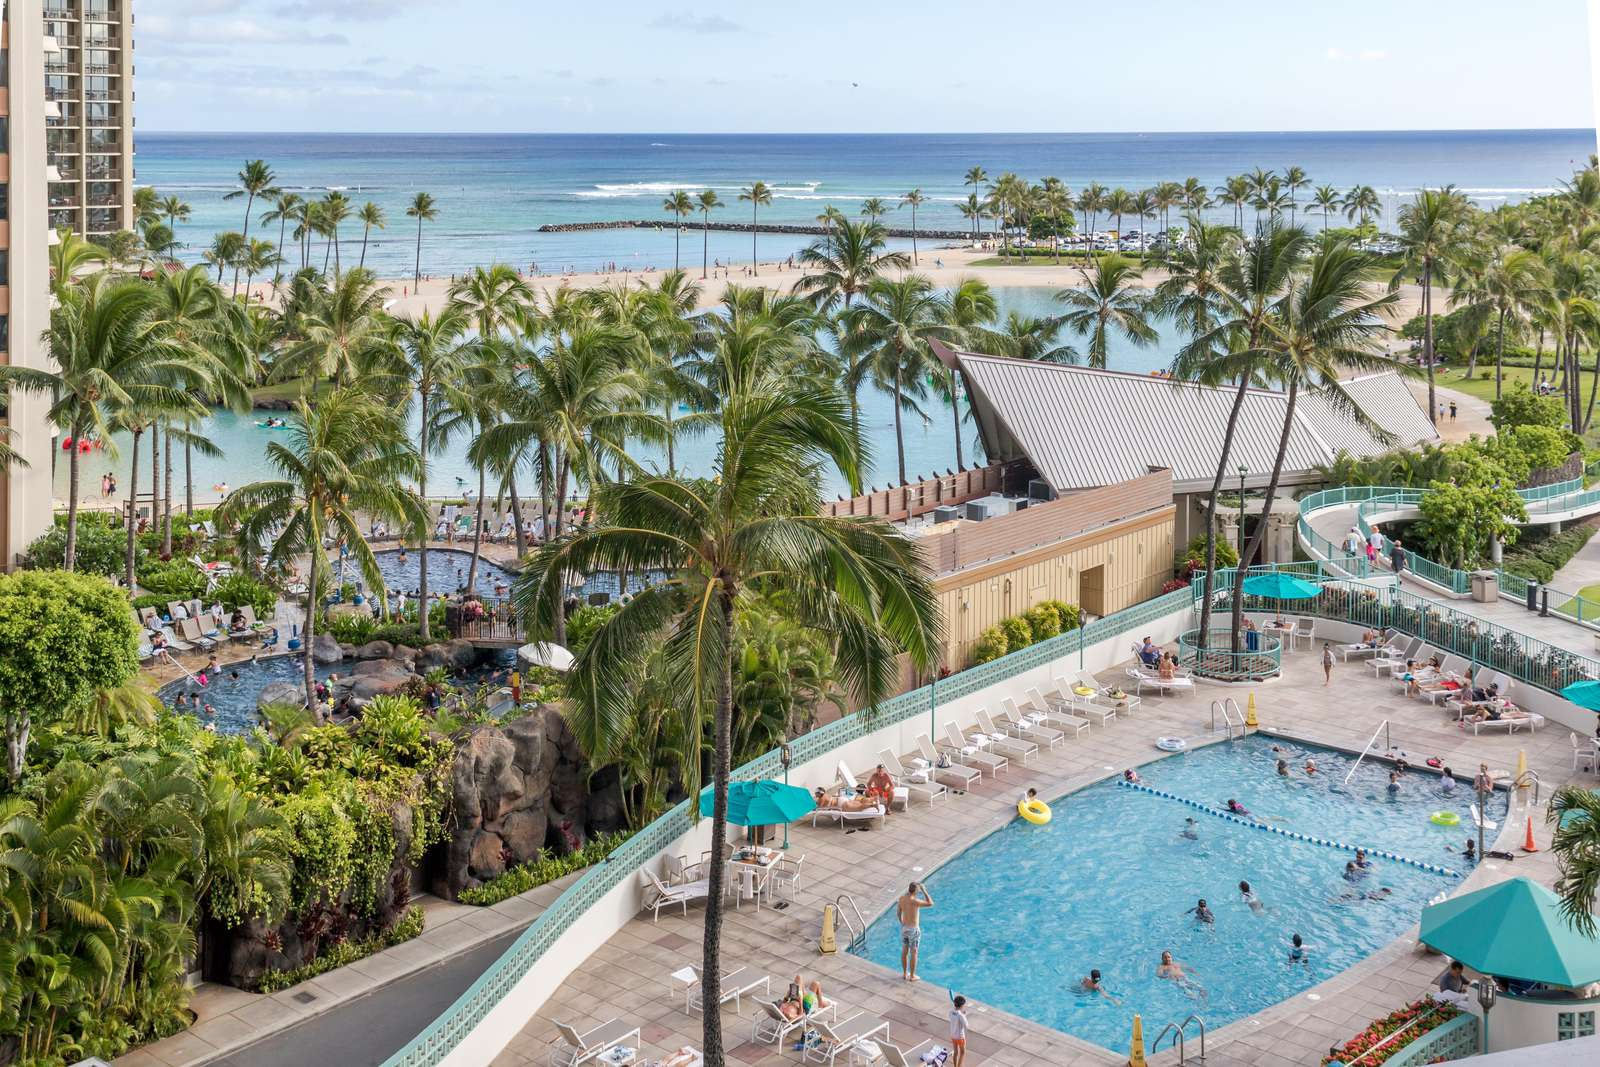 View of main pool from room